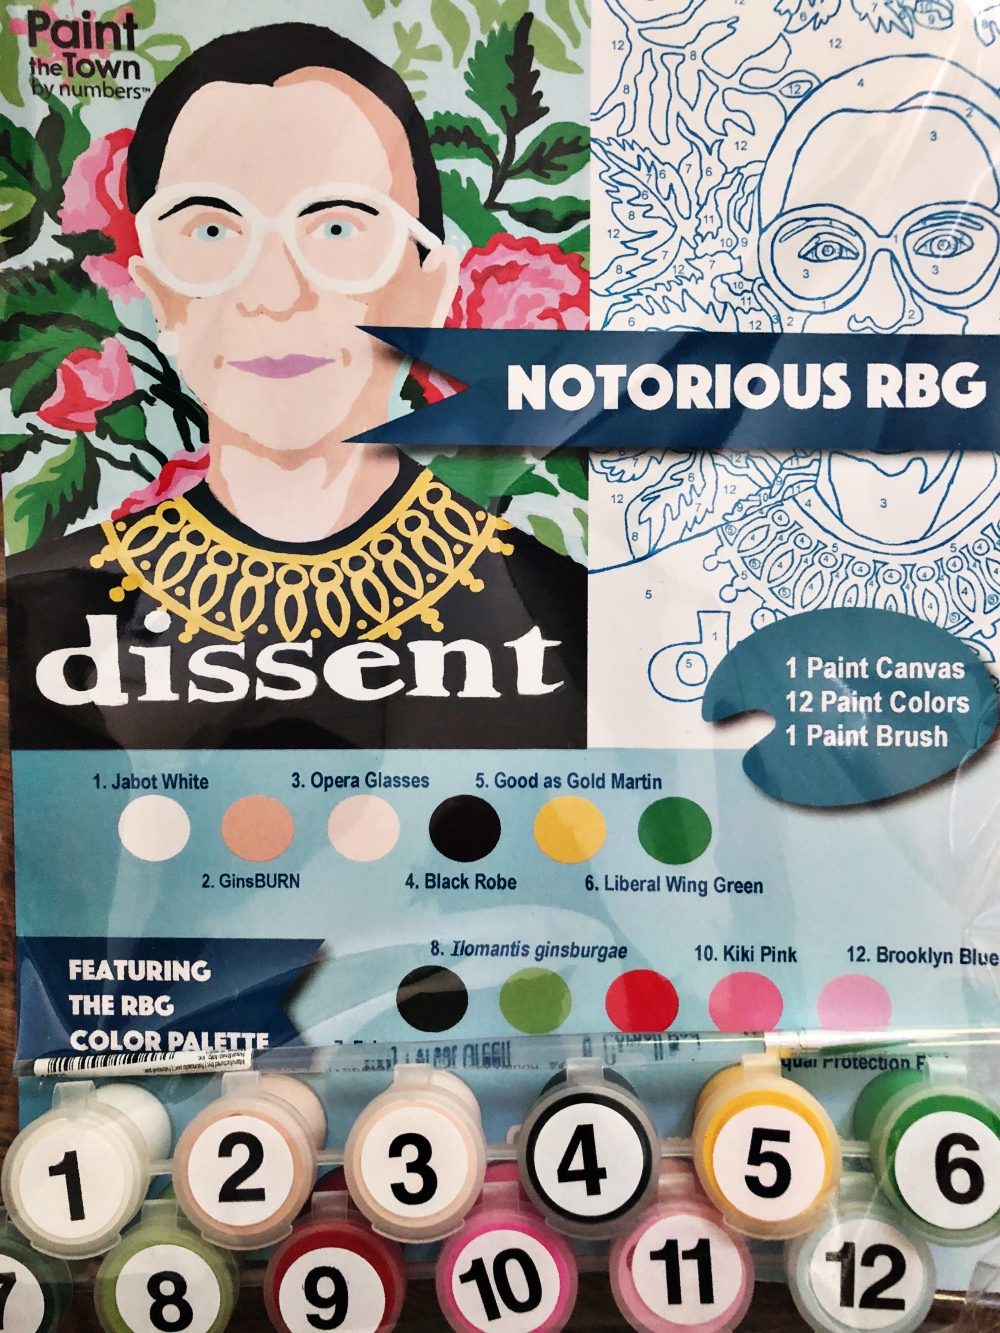 paint by number, ruth bader ginsburg, maker, handmade, nashville